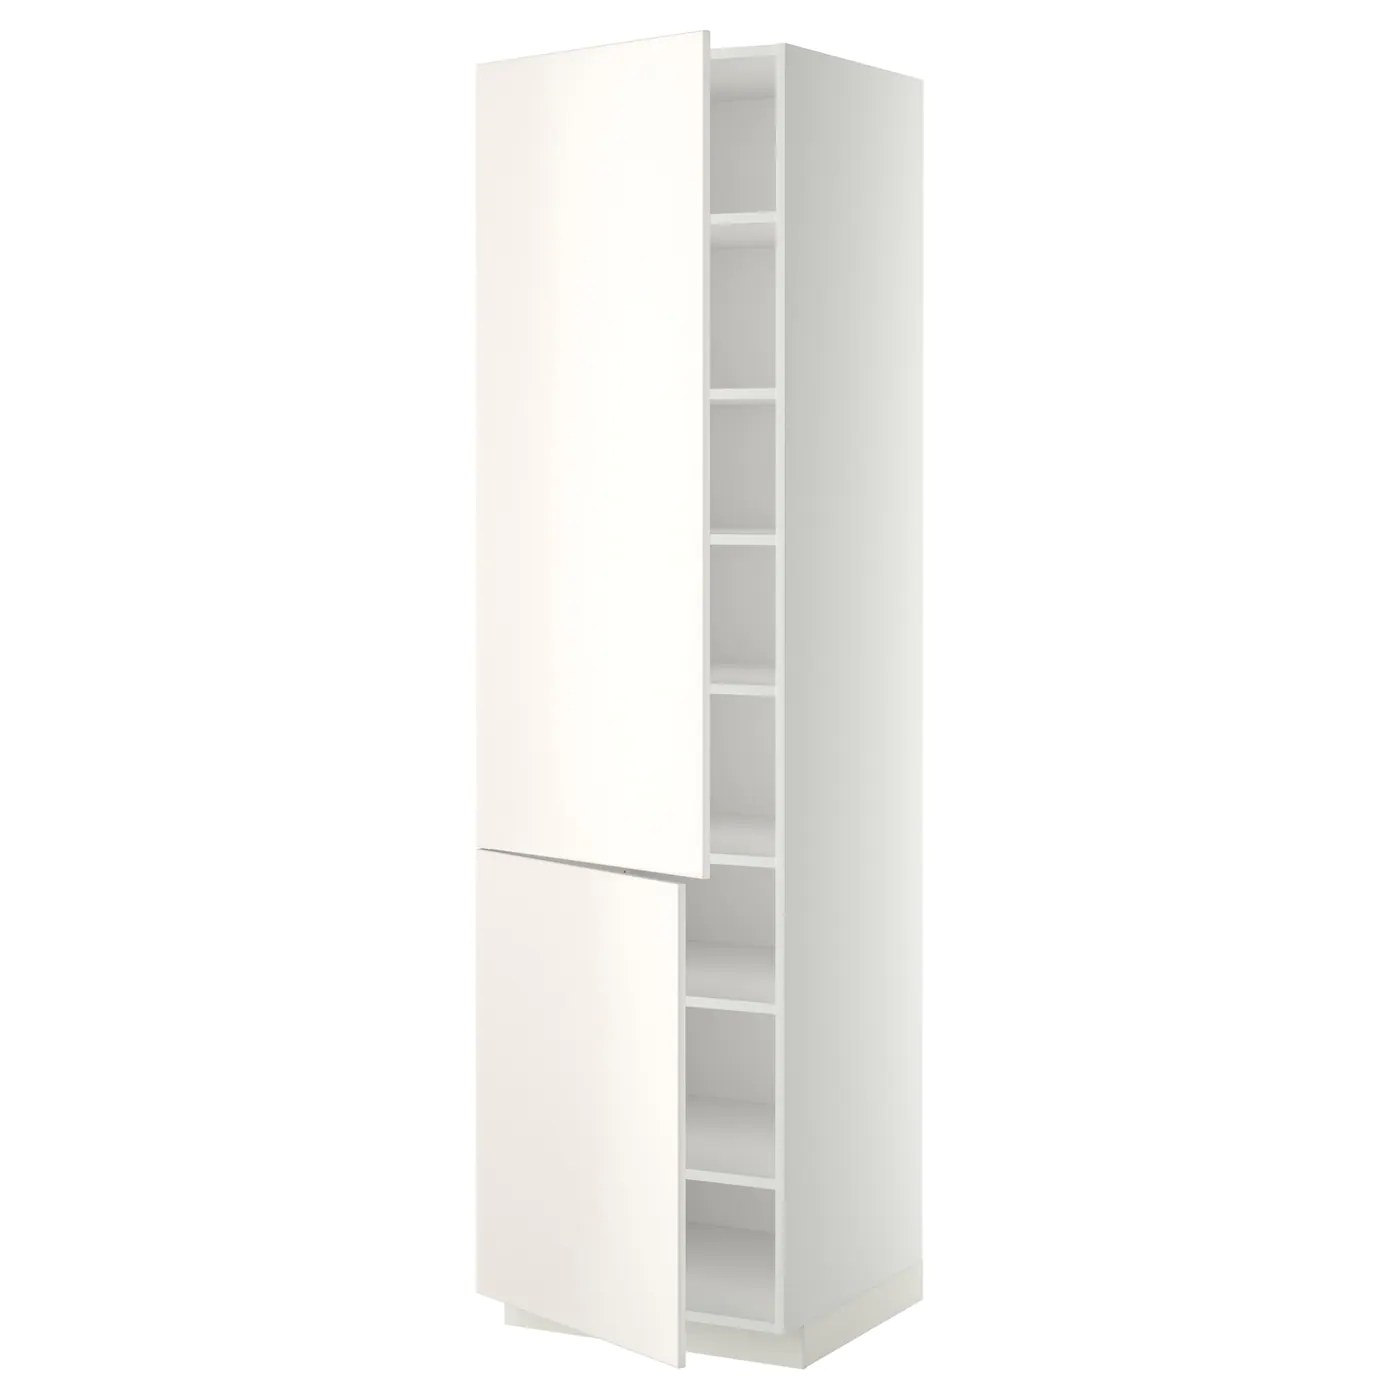 Nobilia Auszugschrank Metod High Cabinet With Shelves 2 Doors White Veddinge